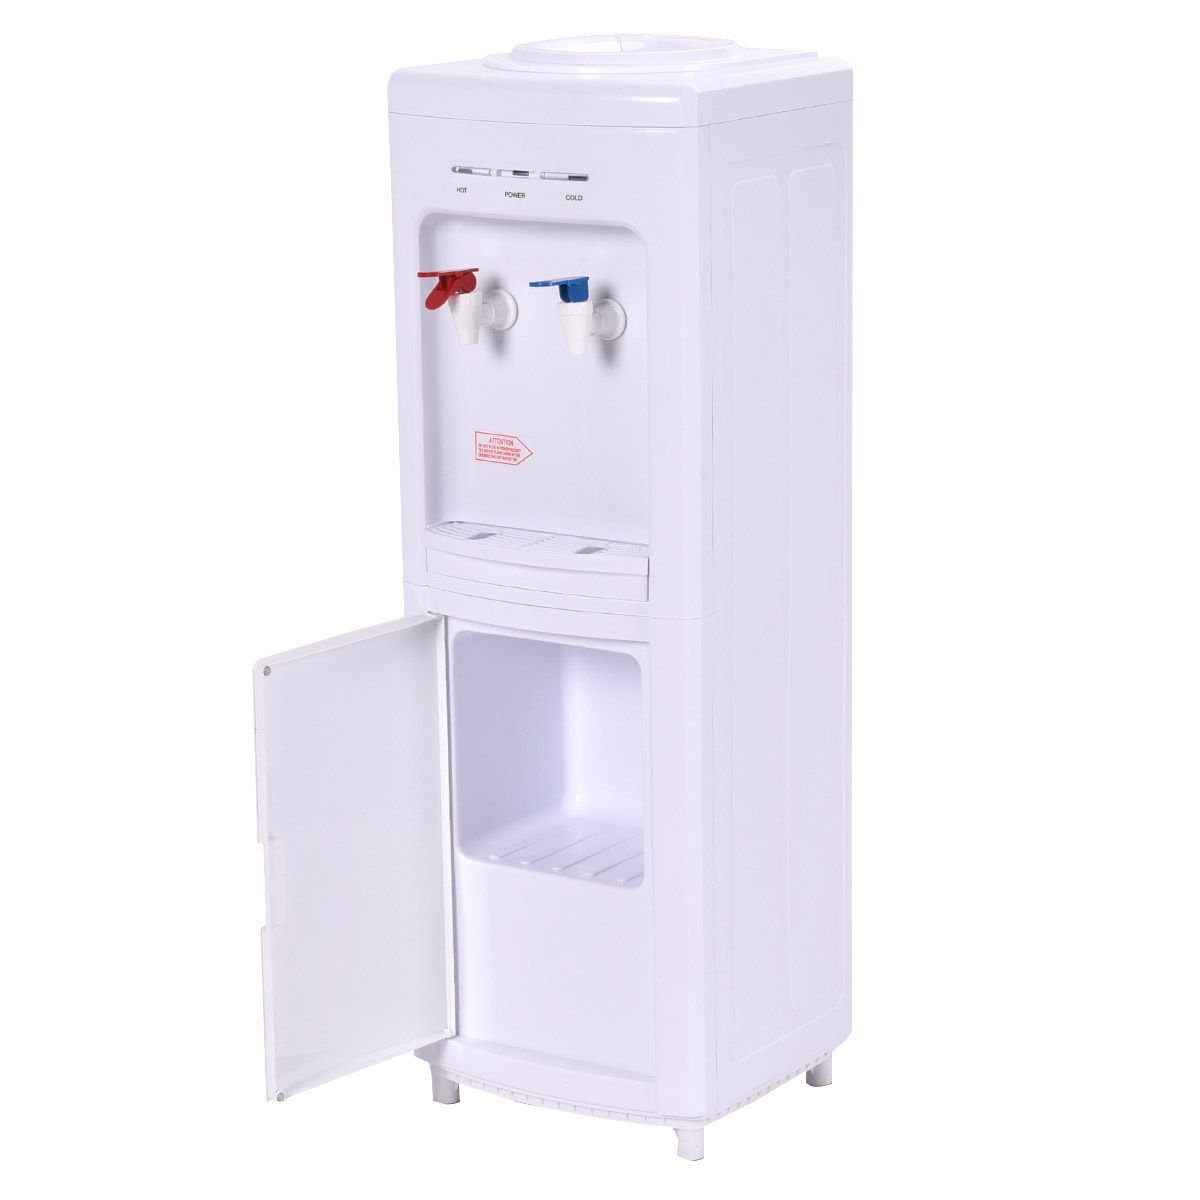 Amazon.com: FClearup1991 Water Cooler Dispenser 5 Gallon Hot Bottle Load Electric Primo Home New: Kitchen & Dining